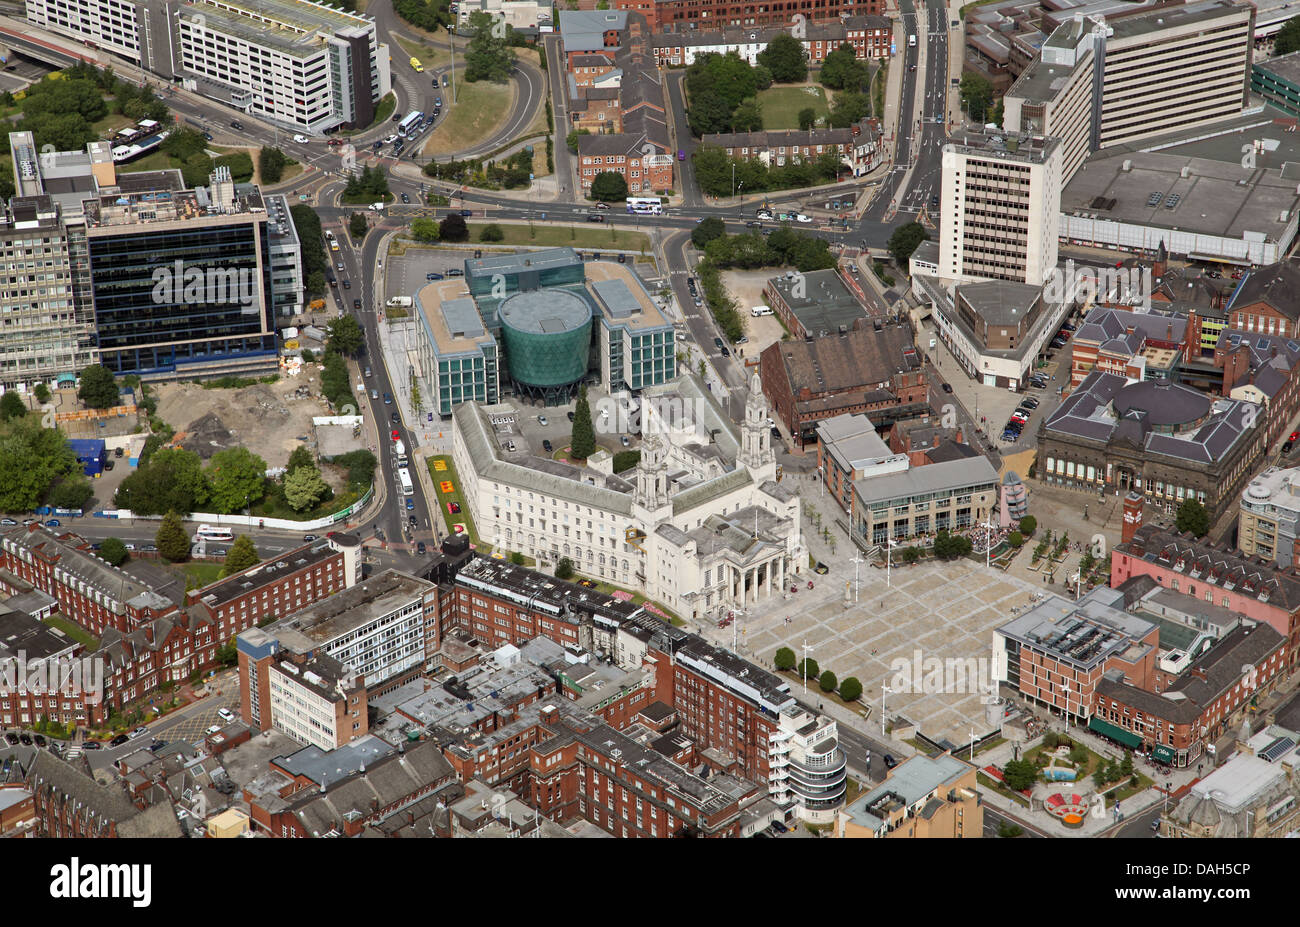 aerial view of Leeds Civic Quarter in the City Centre - Stock Image